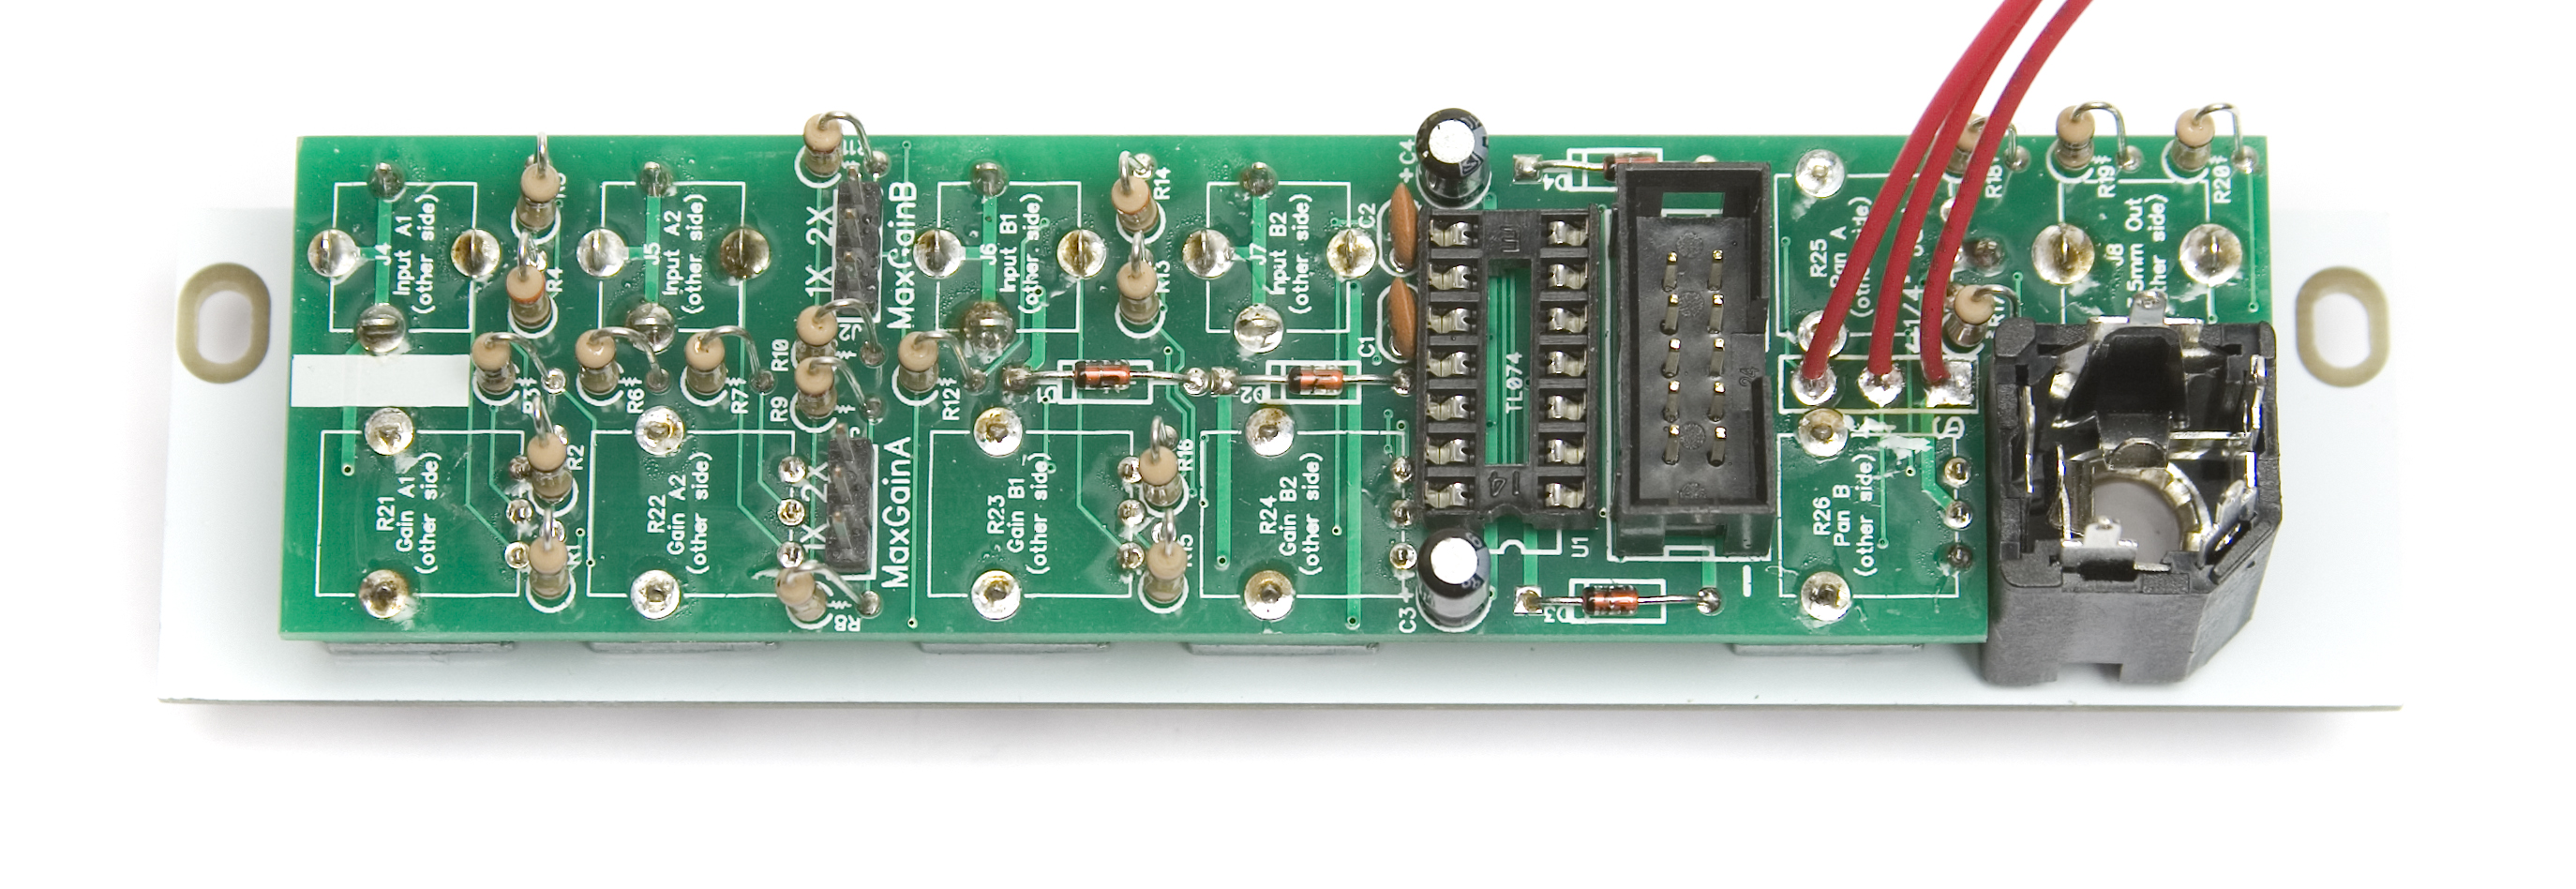 MST Stereo Output Mixer Assembly Instructions | Synthrotek